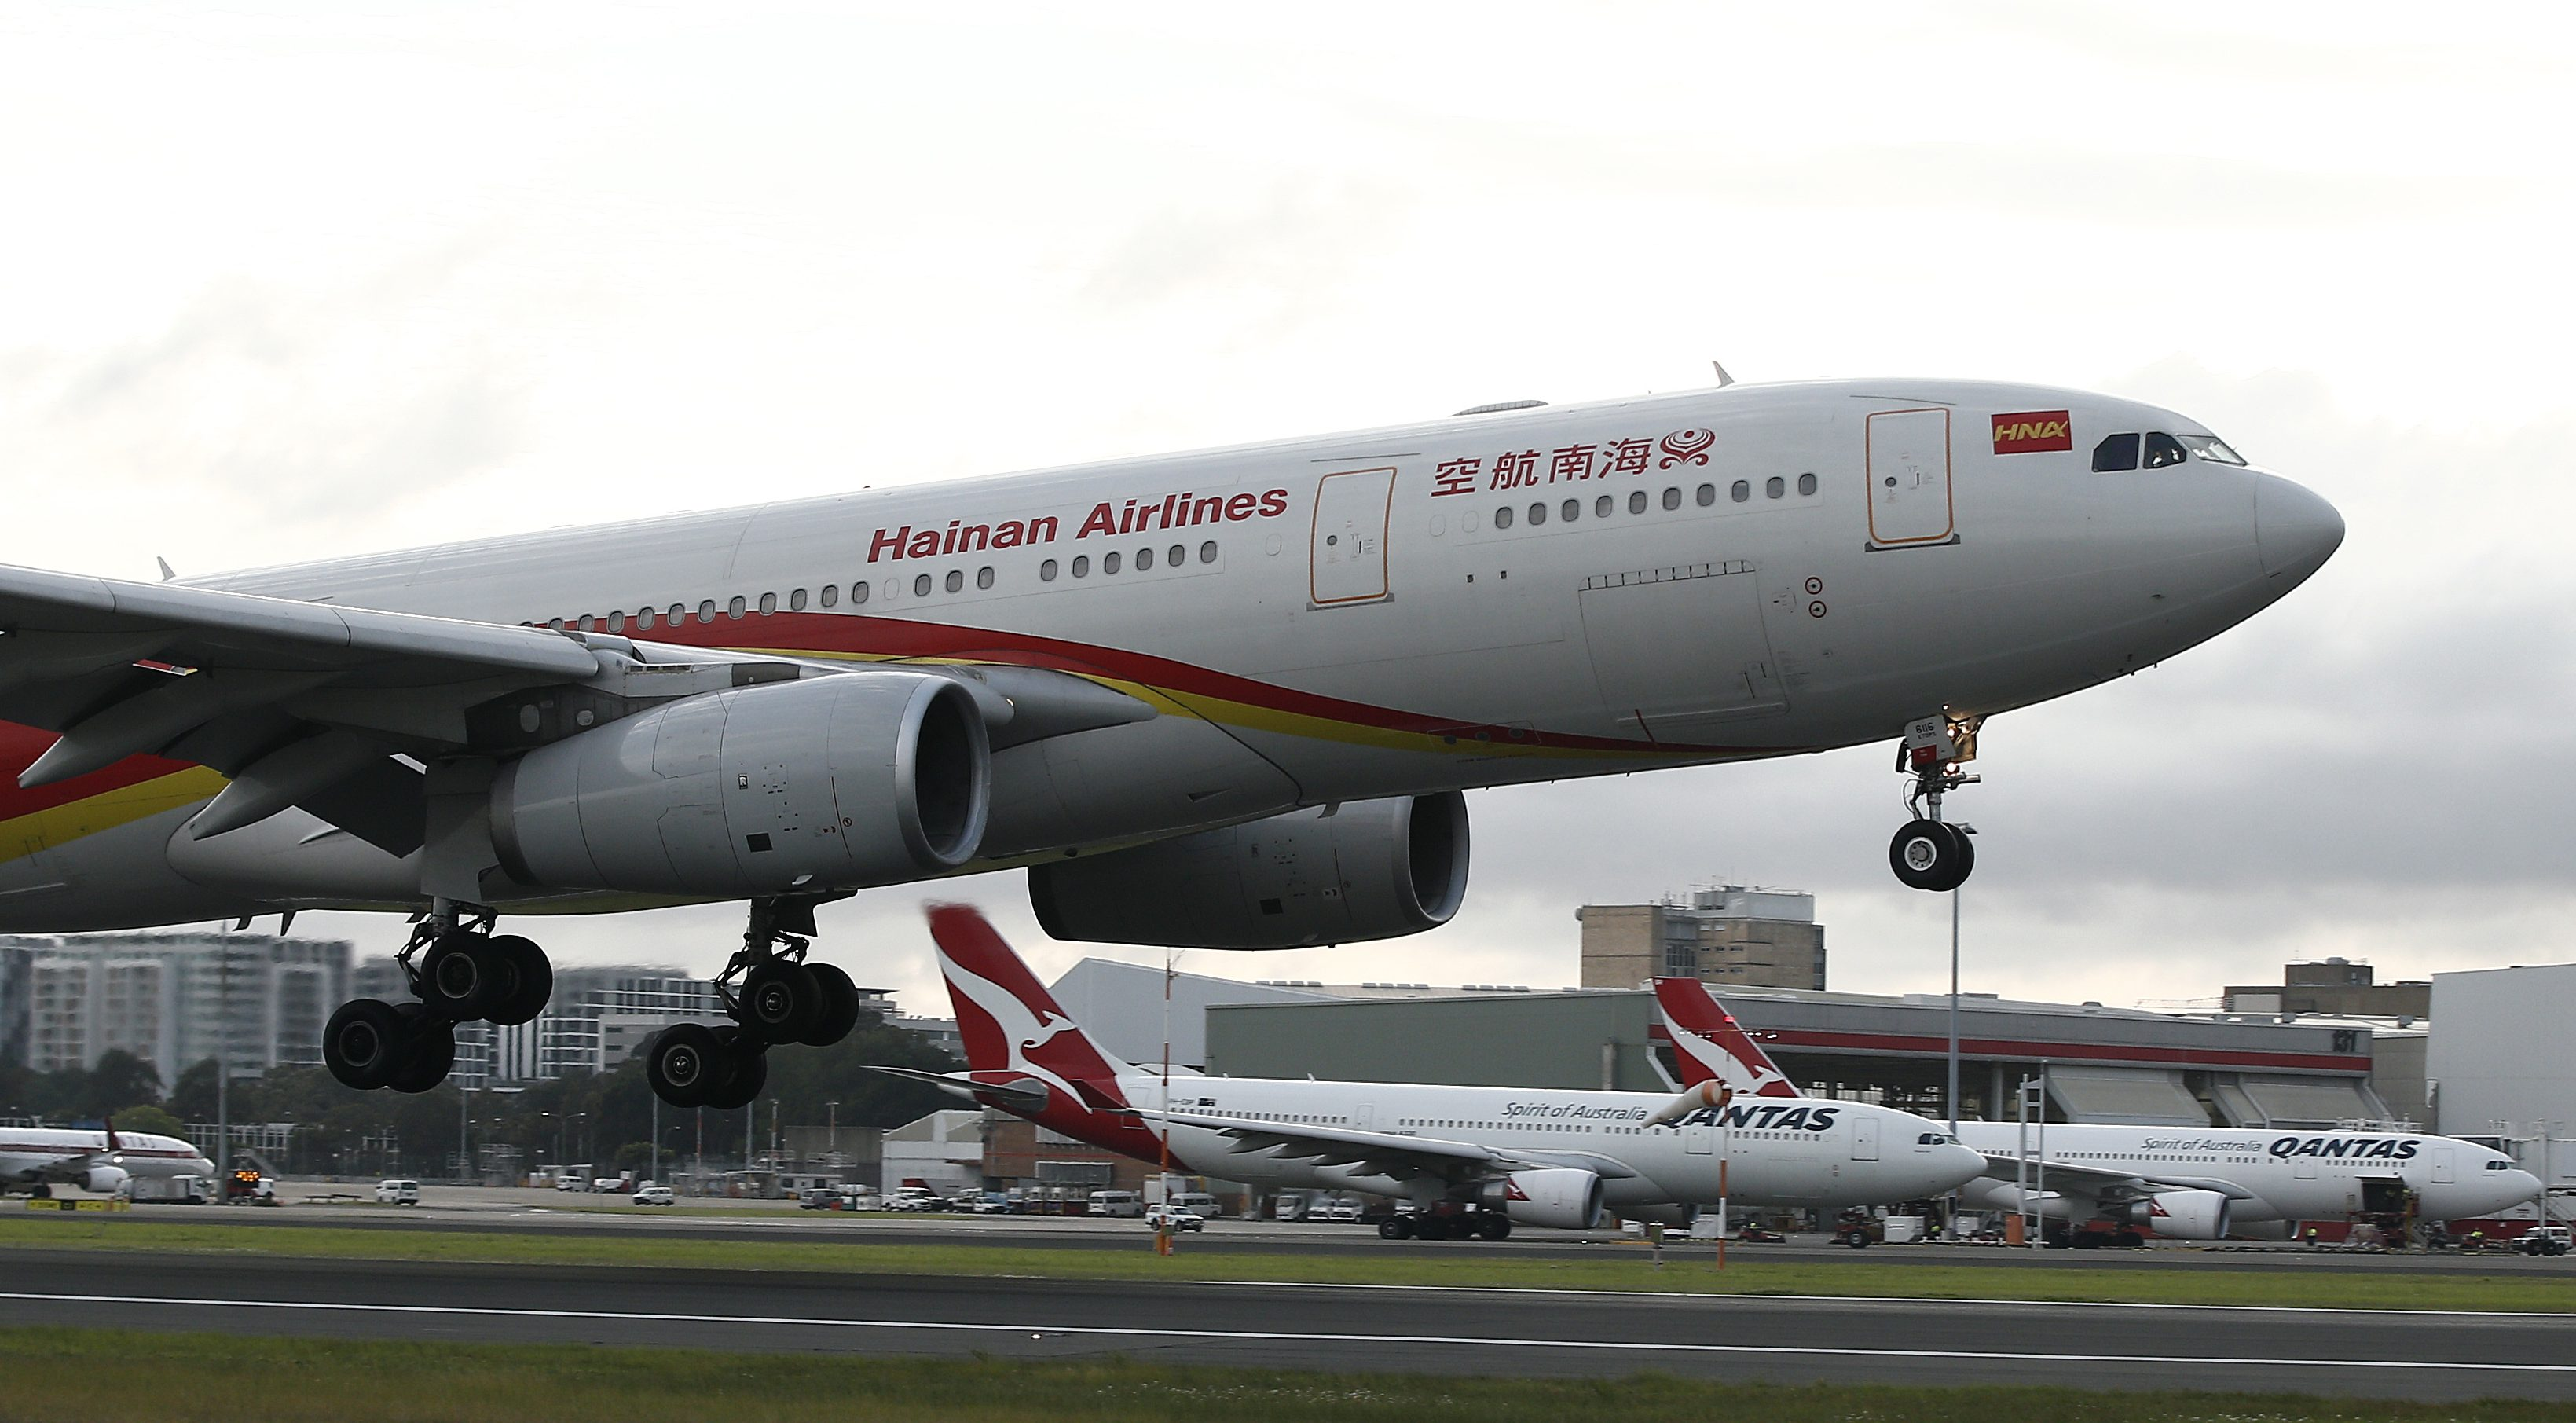 Hainan Airlines' new service from Changsha to Sydney touches down for the first time at Sydney Airport in Australia, Tuesday, Sept 13, 2016. The airline will run a twice-weekly service operated by an A330-200 aircraft with 250 seats. (AP Photo/Rob Griffith)